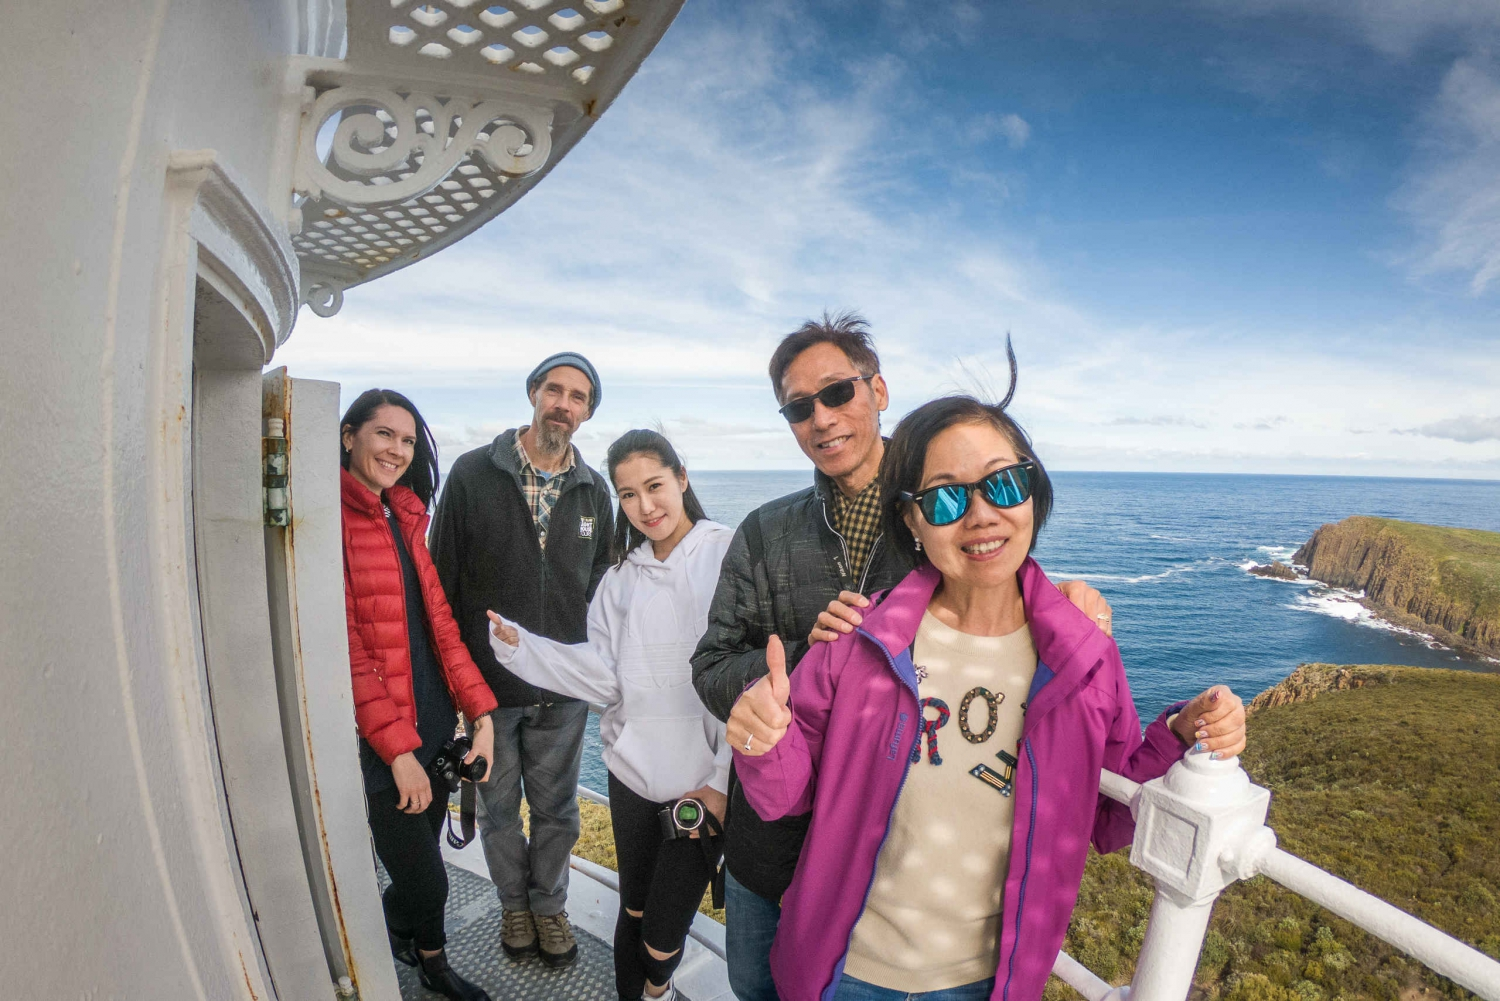 Bruny Island: Full-Day Food, Lighthouse & Sightseeing Tour